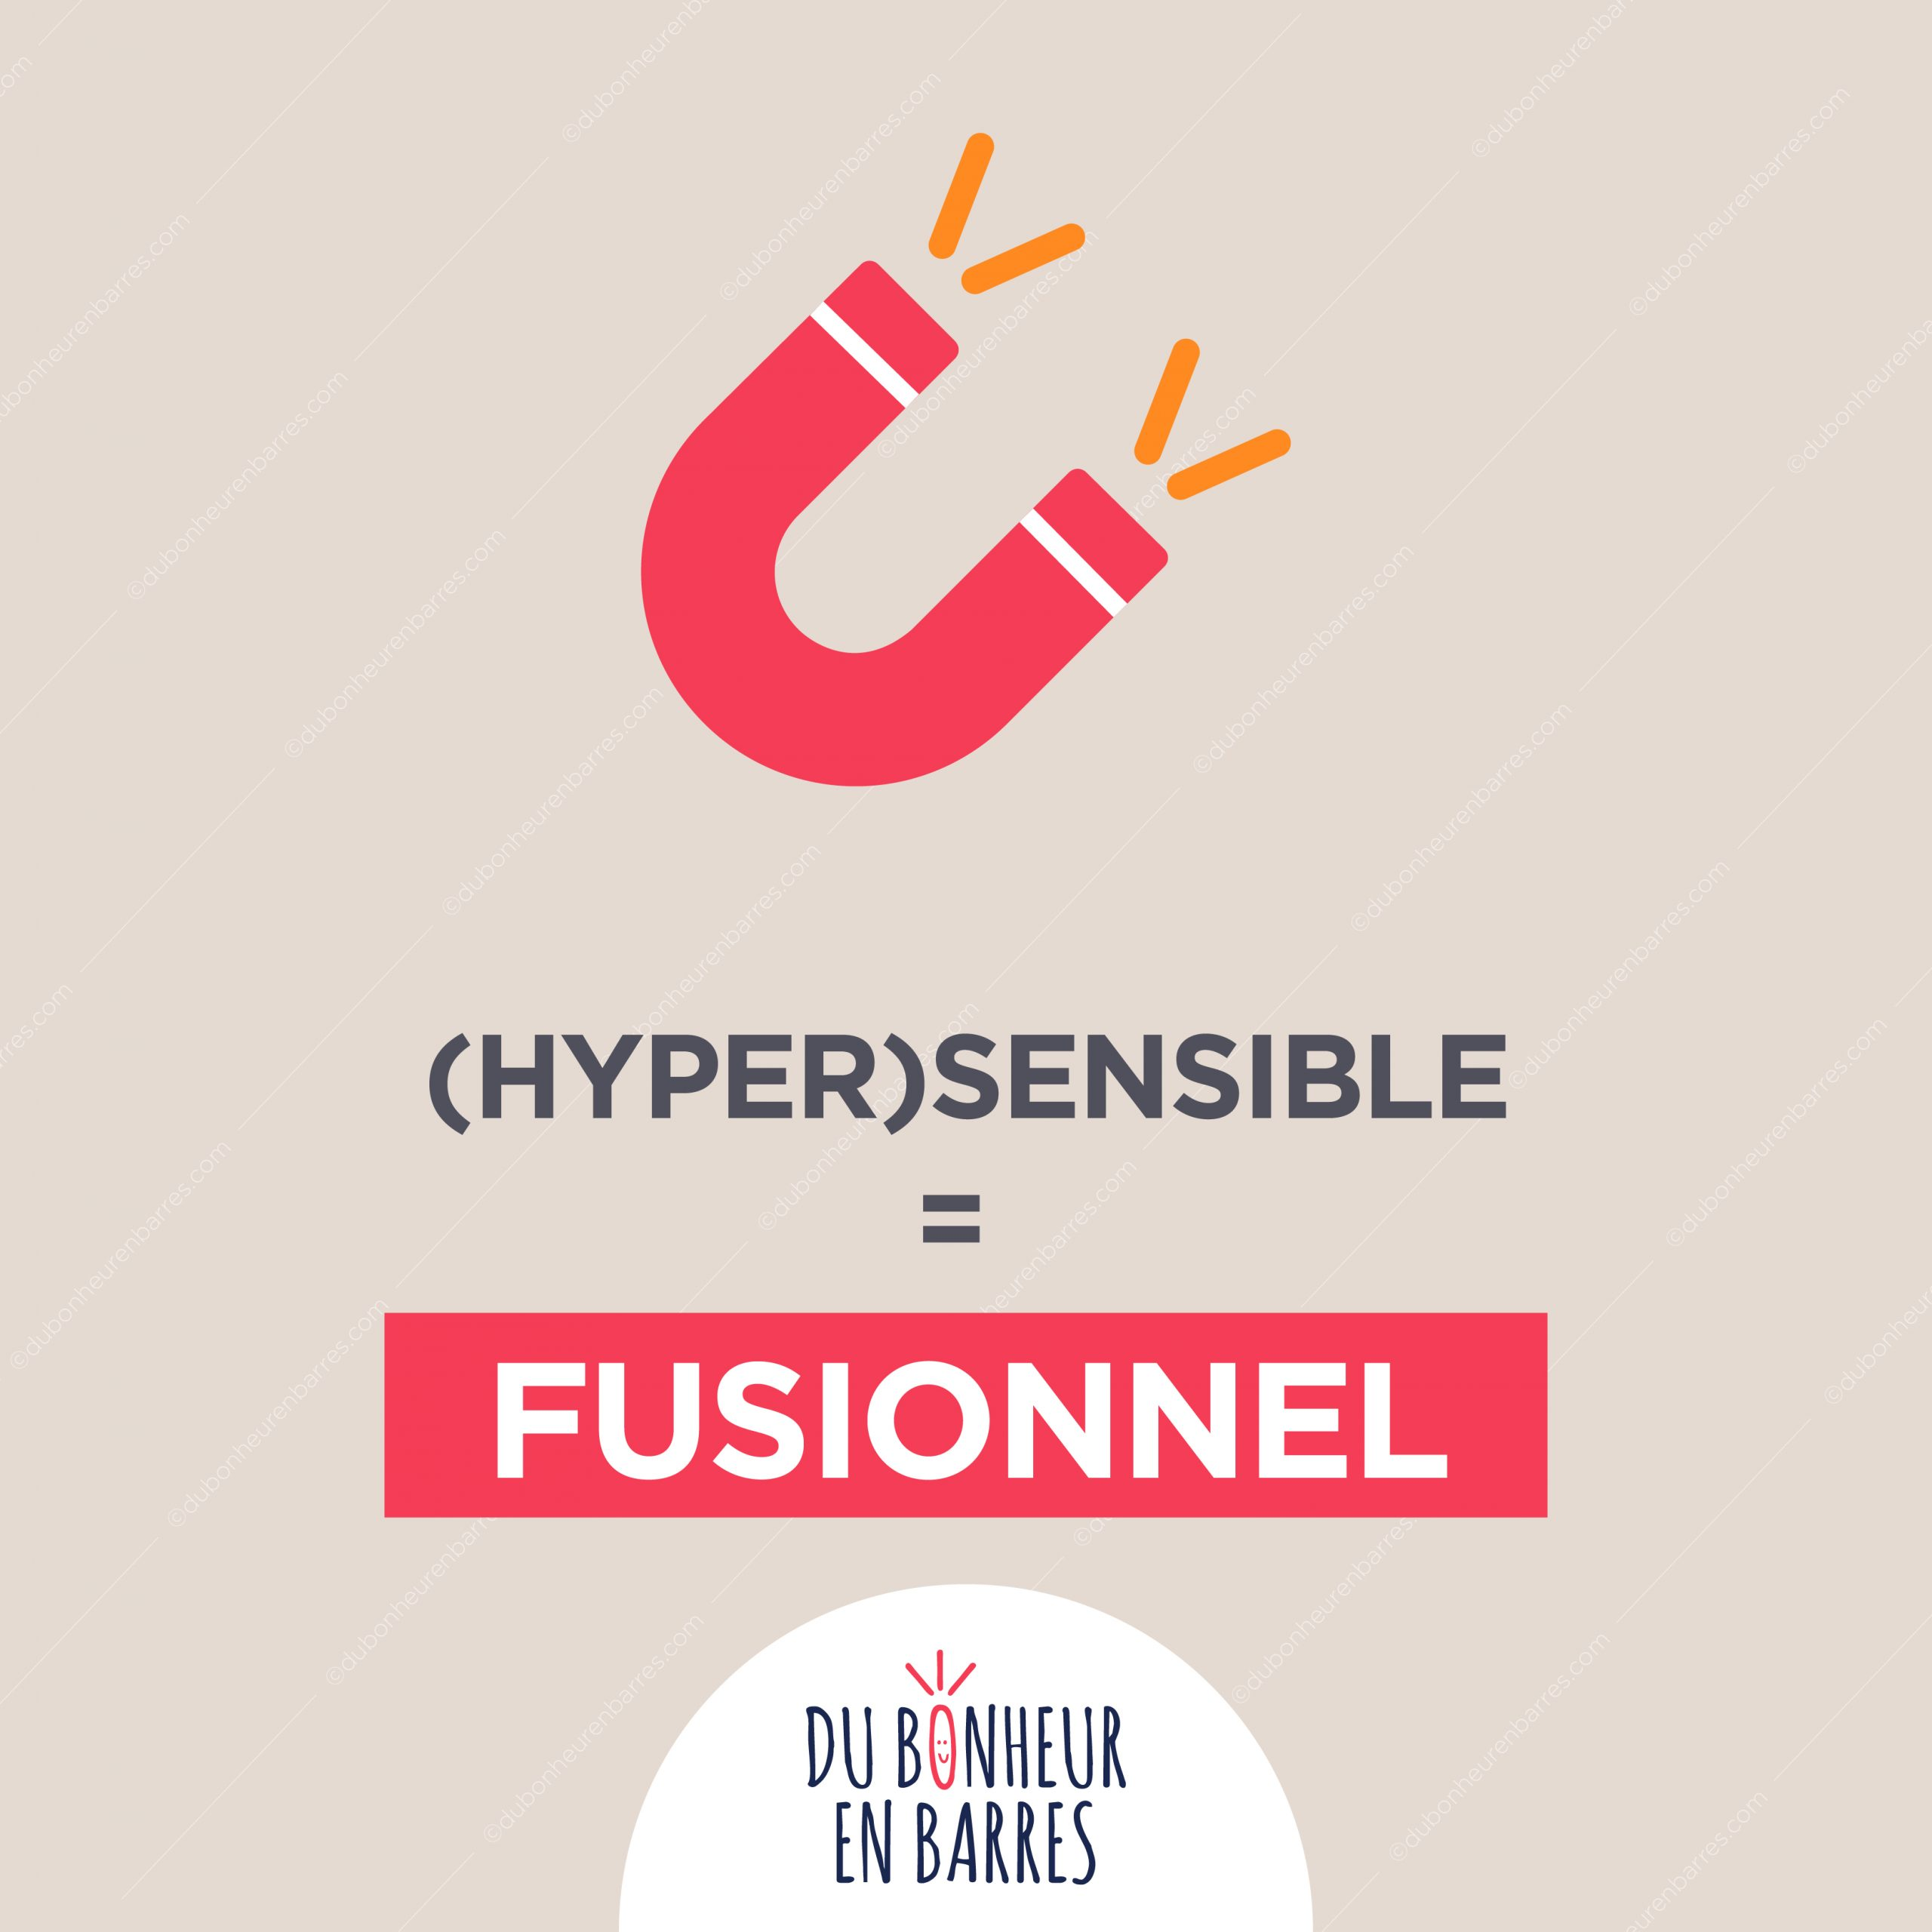 Hypersensible = fusionnel